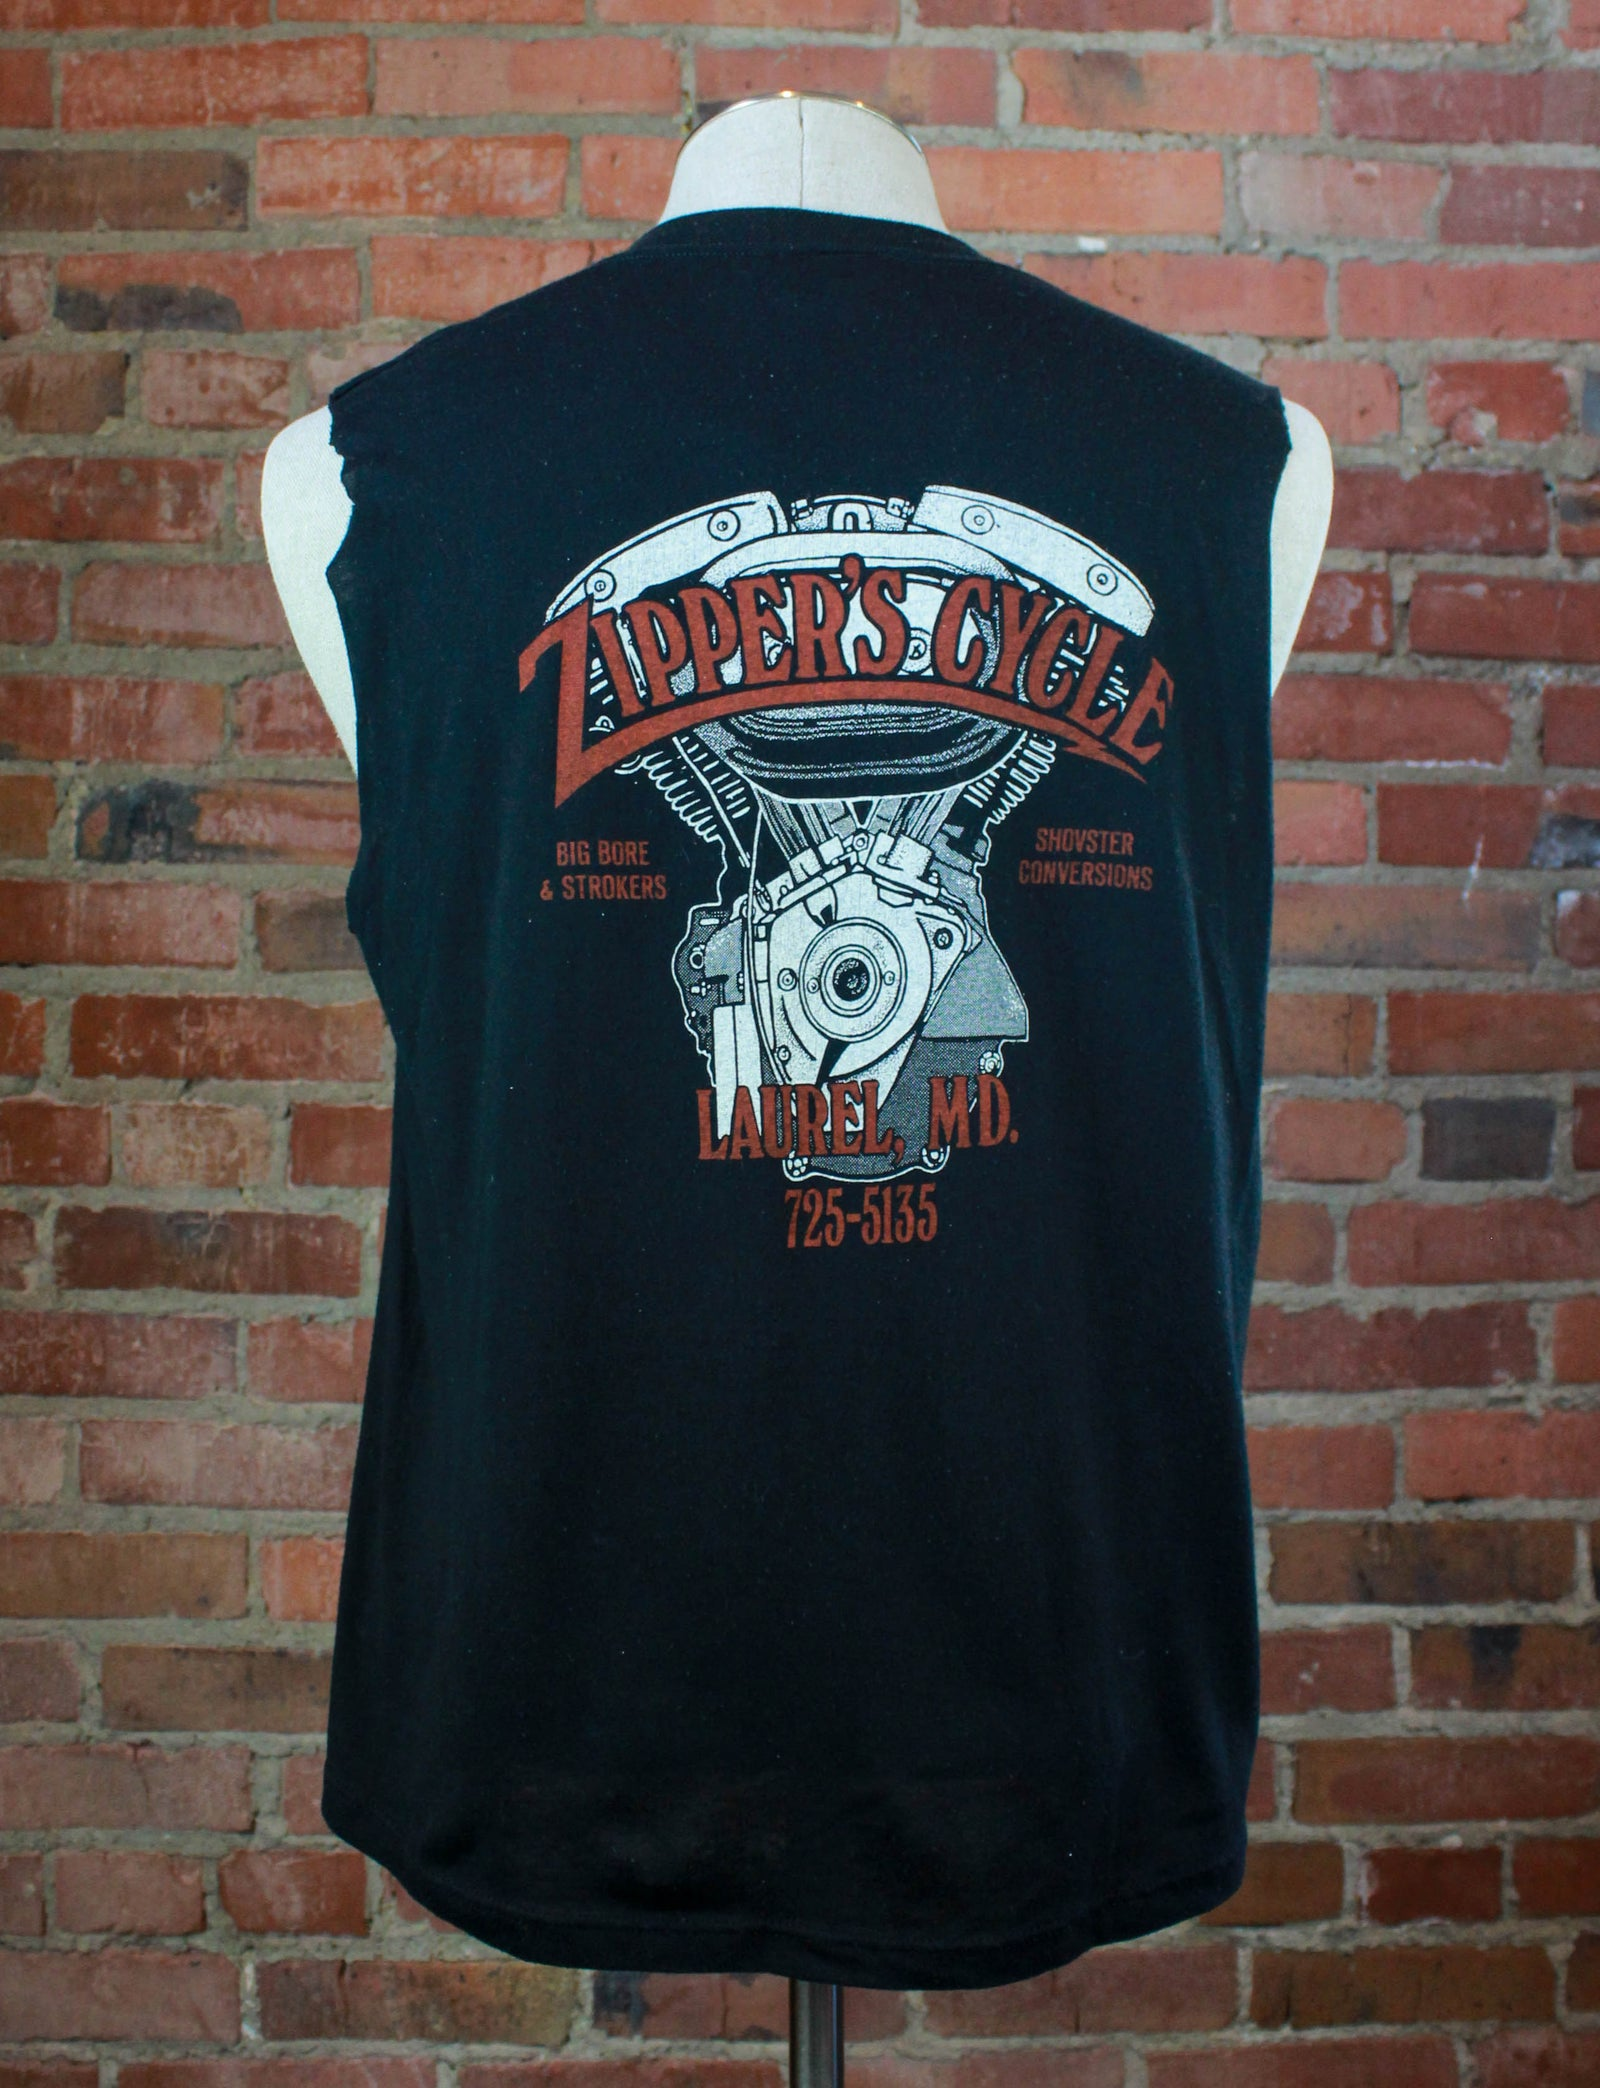 Vintage 80's Harley Davidson Graphic T Shirt Maryland Real Steel Bikers Only Cut Off Large